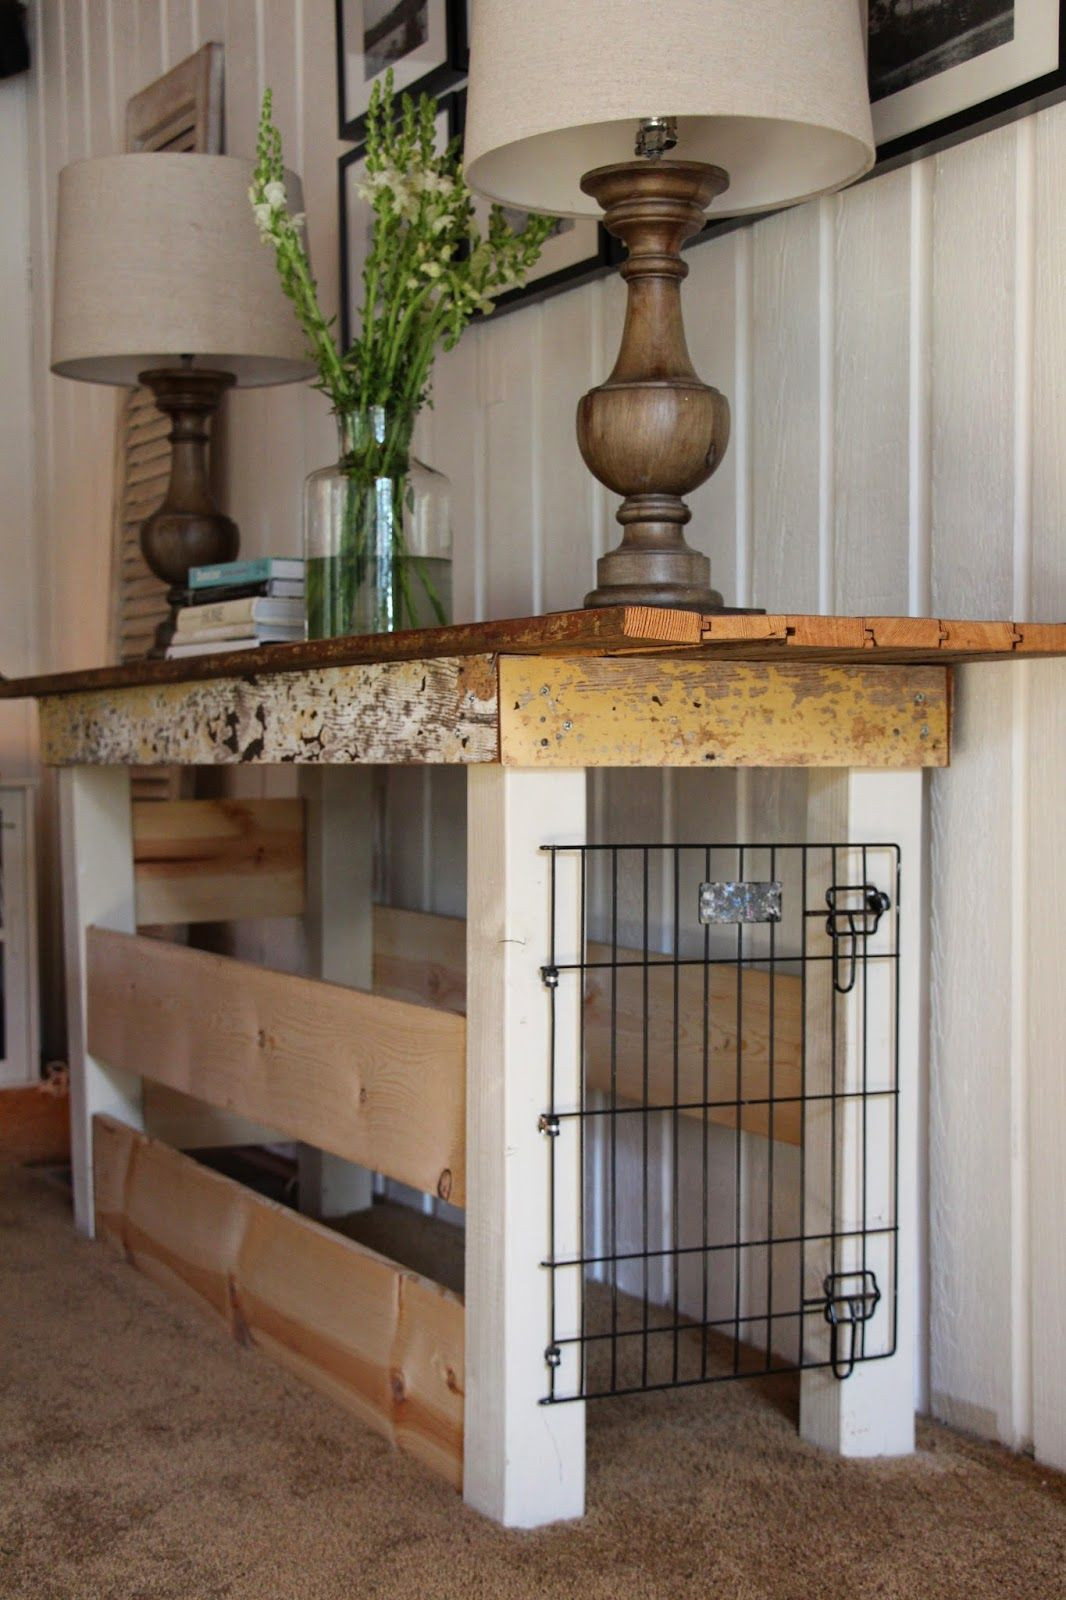 Best ideas about Dog Crate Furniture DIY . Save or Pin Great idea for a dog crate I would probably make it look Now.